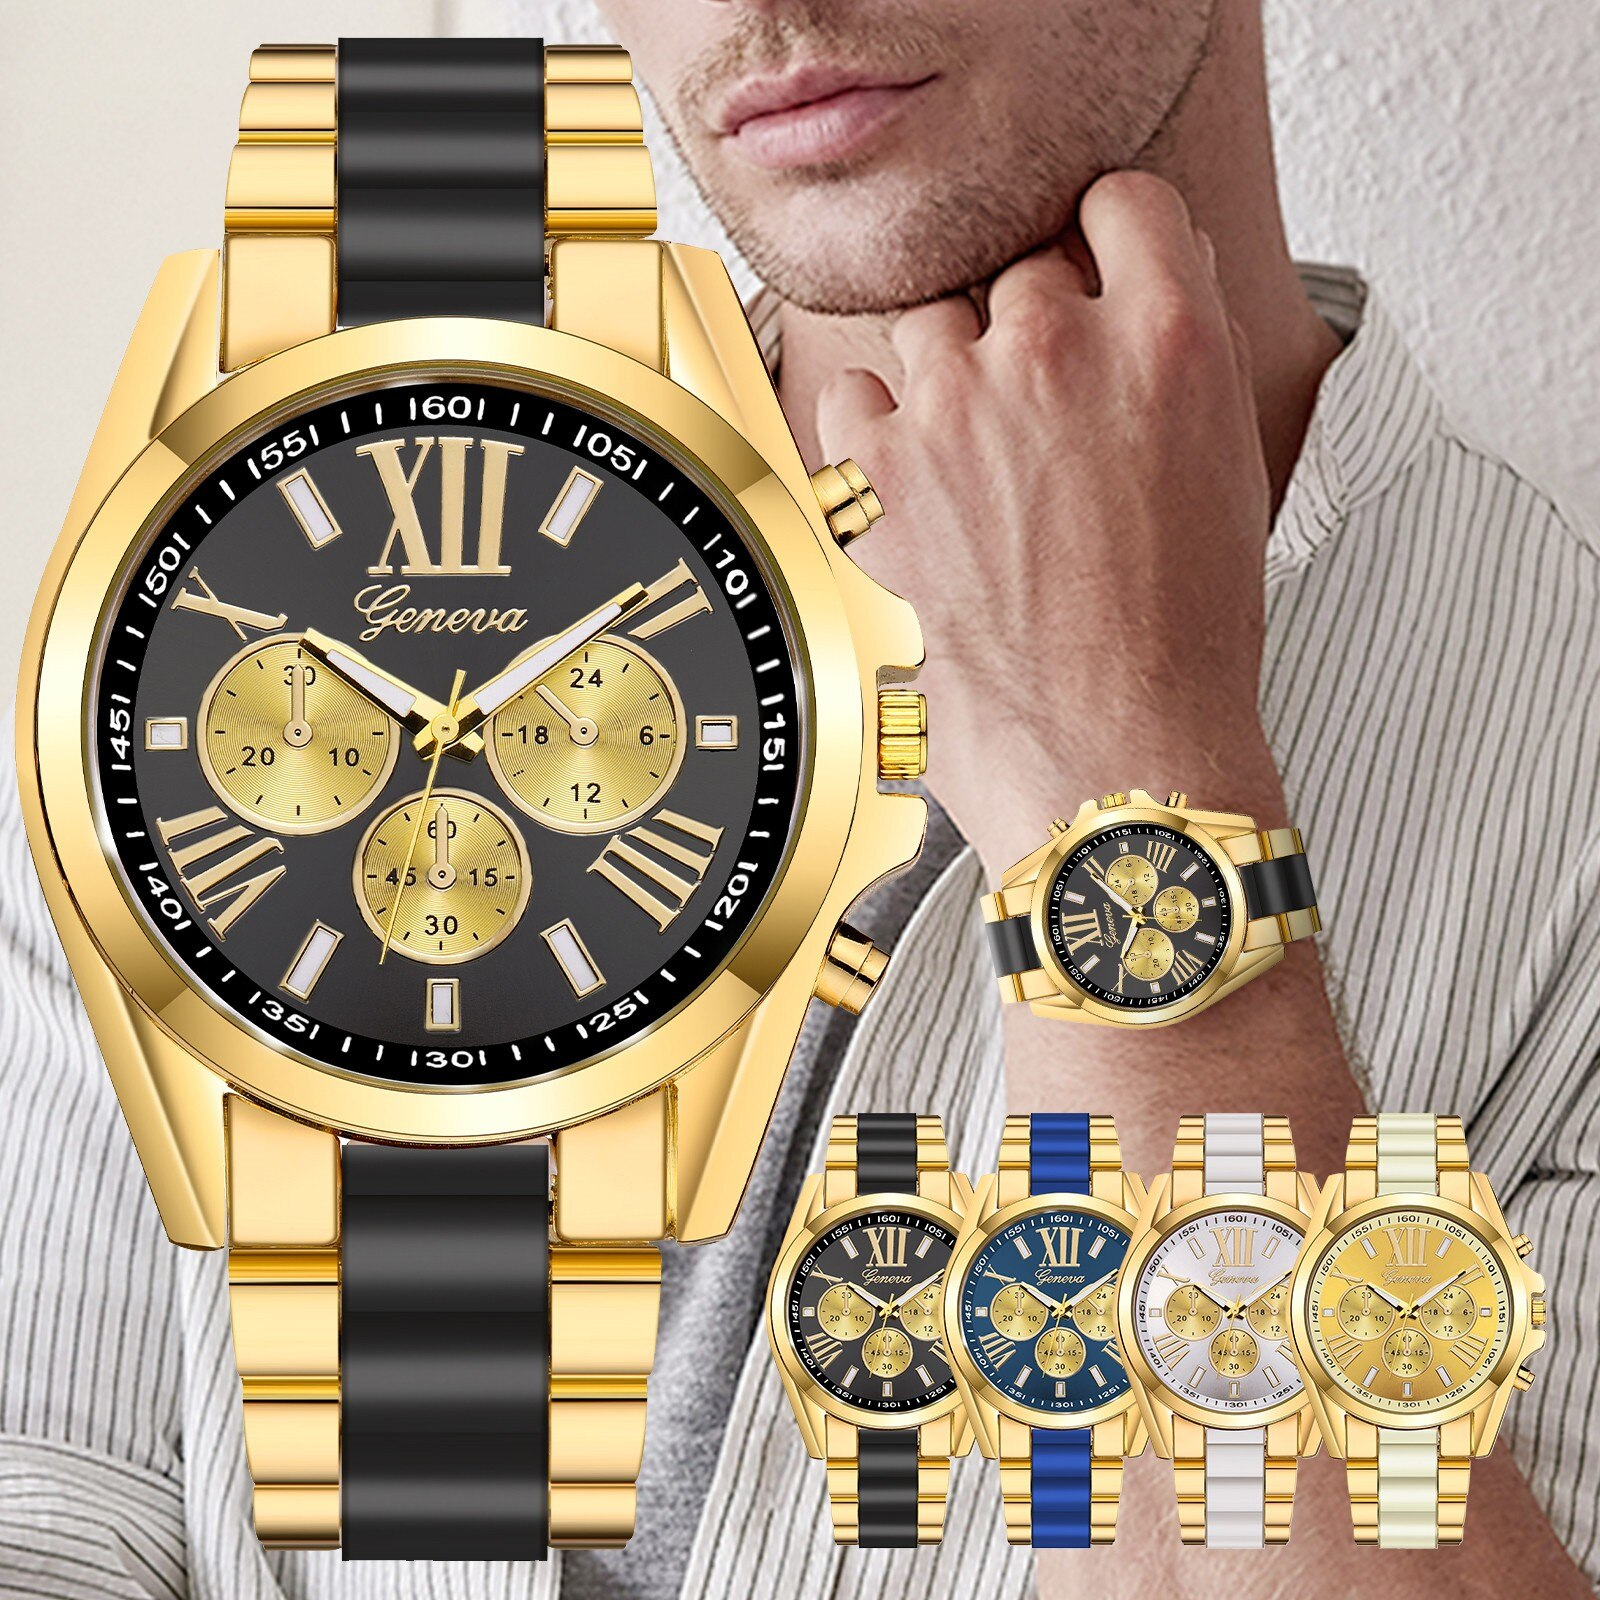 He72c4700c4984849afb02e206dfaece6S - Fashion Luxury Watches for Men Casual Quartz Stainless Steel Band Diamonds Business Watch relogio masculino часы мужские#40